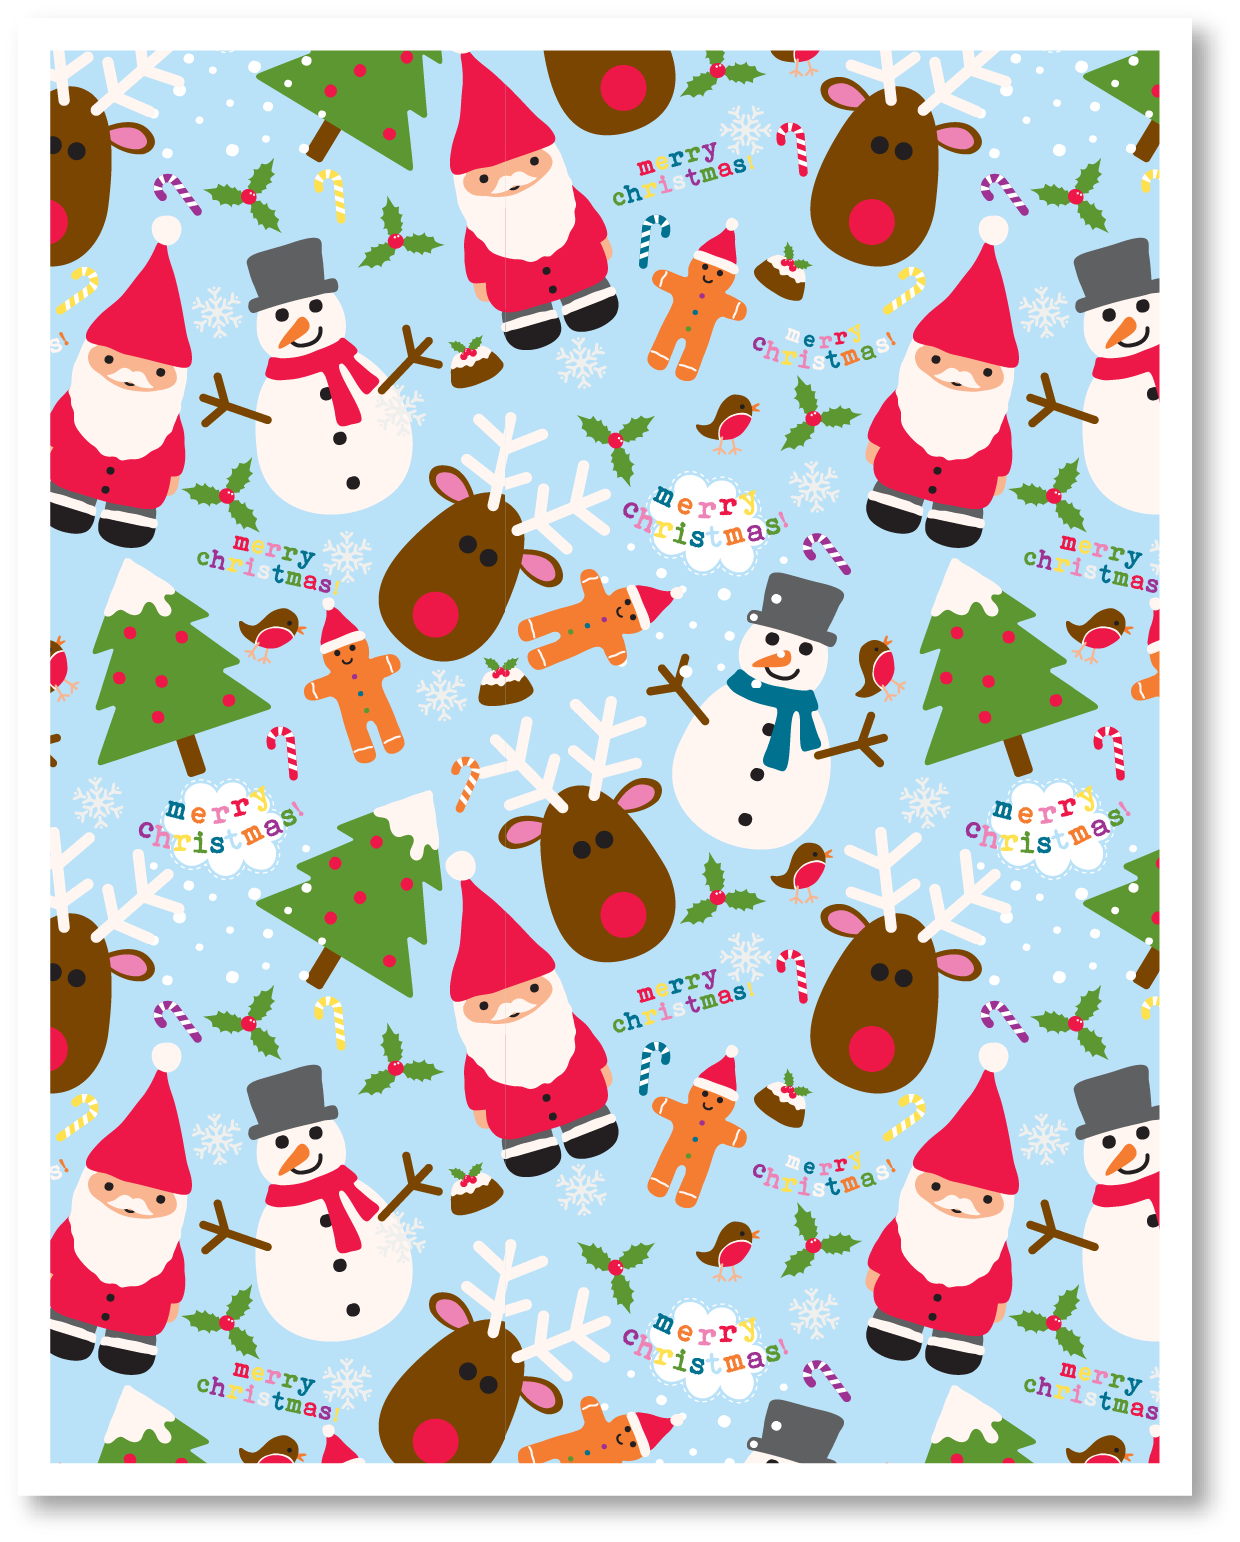 It's just a picture of Impeccable Christmas Printable Paper